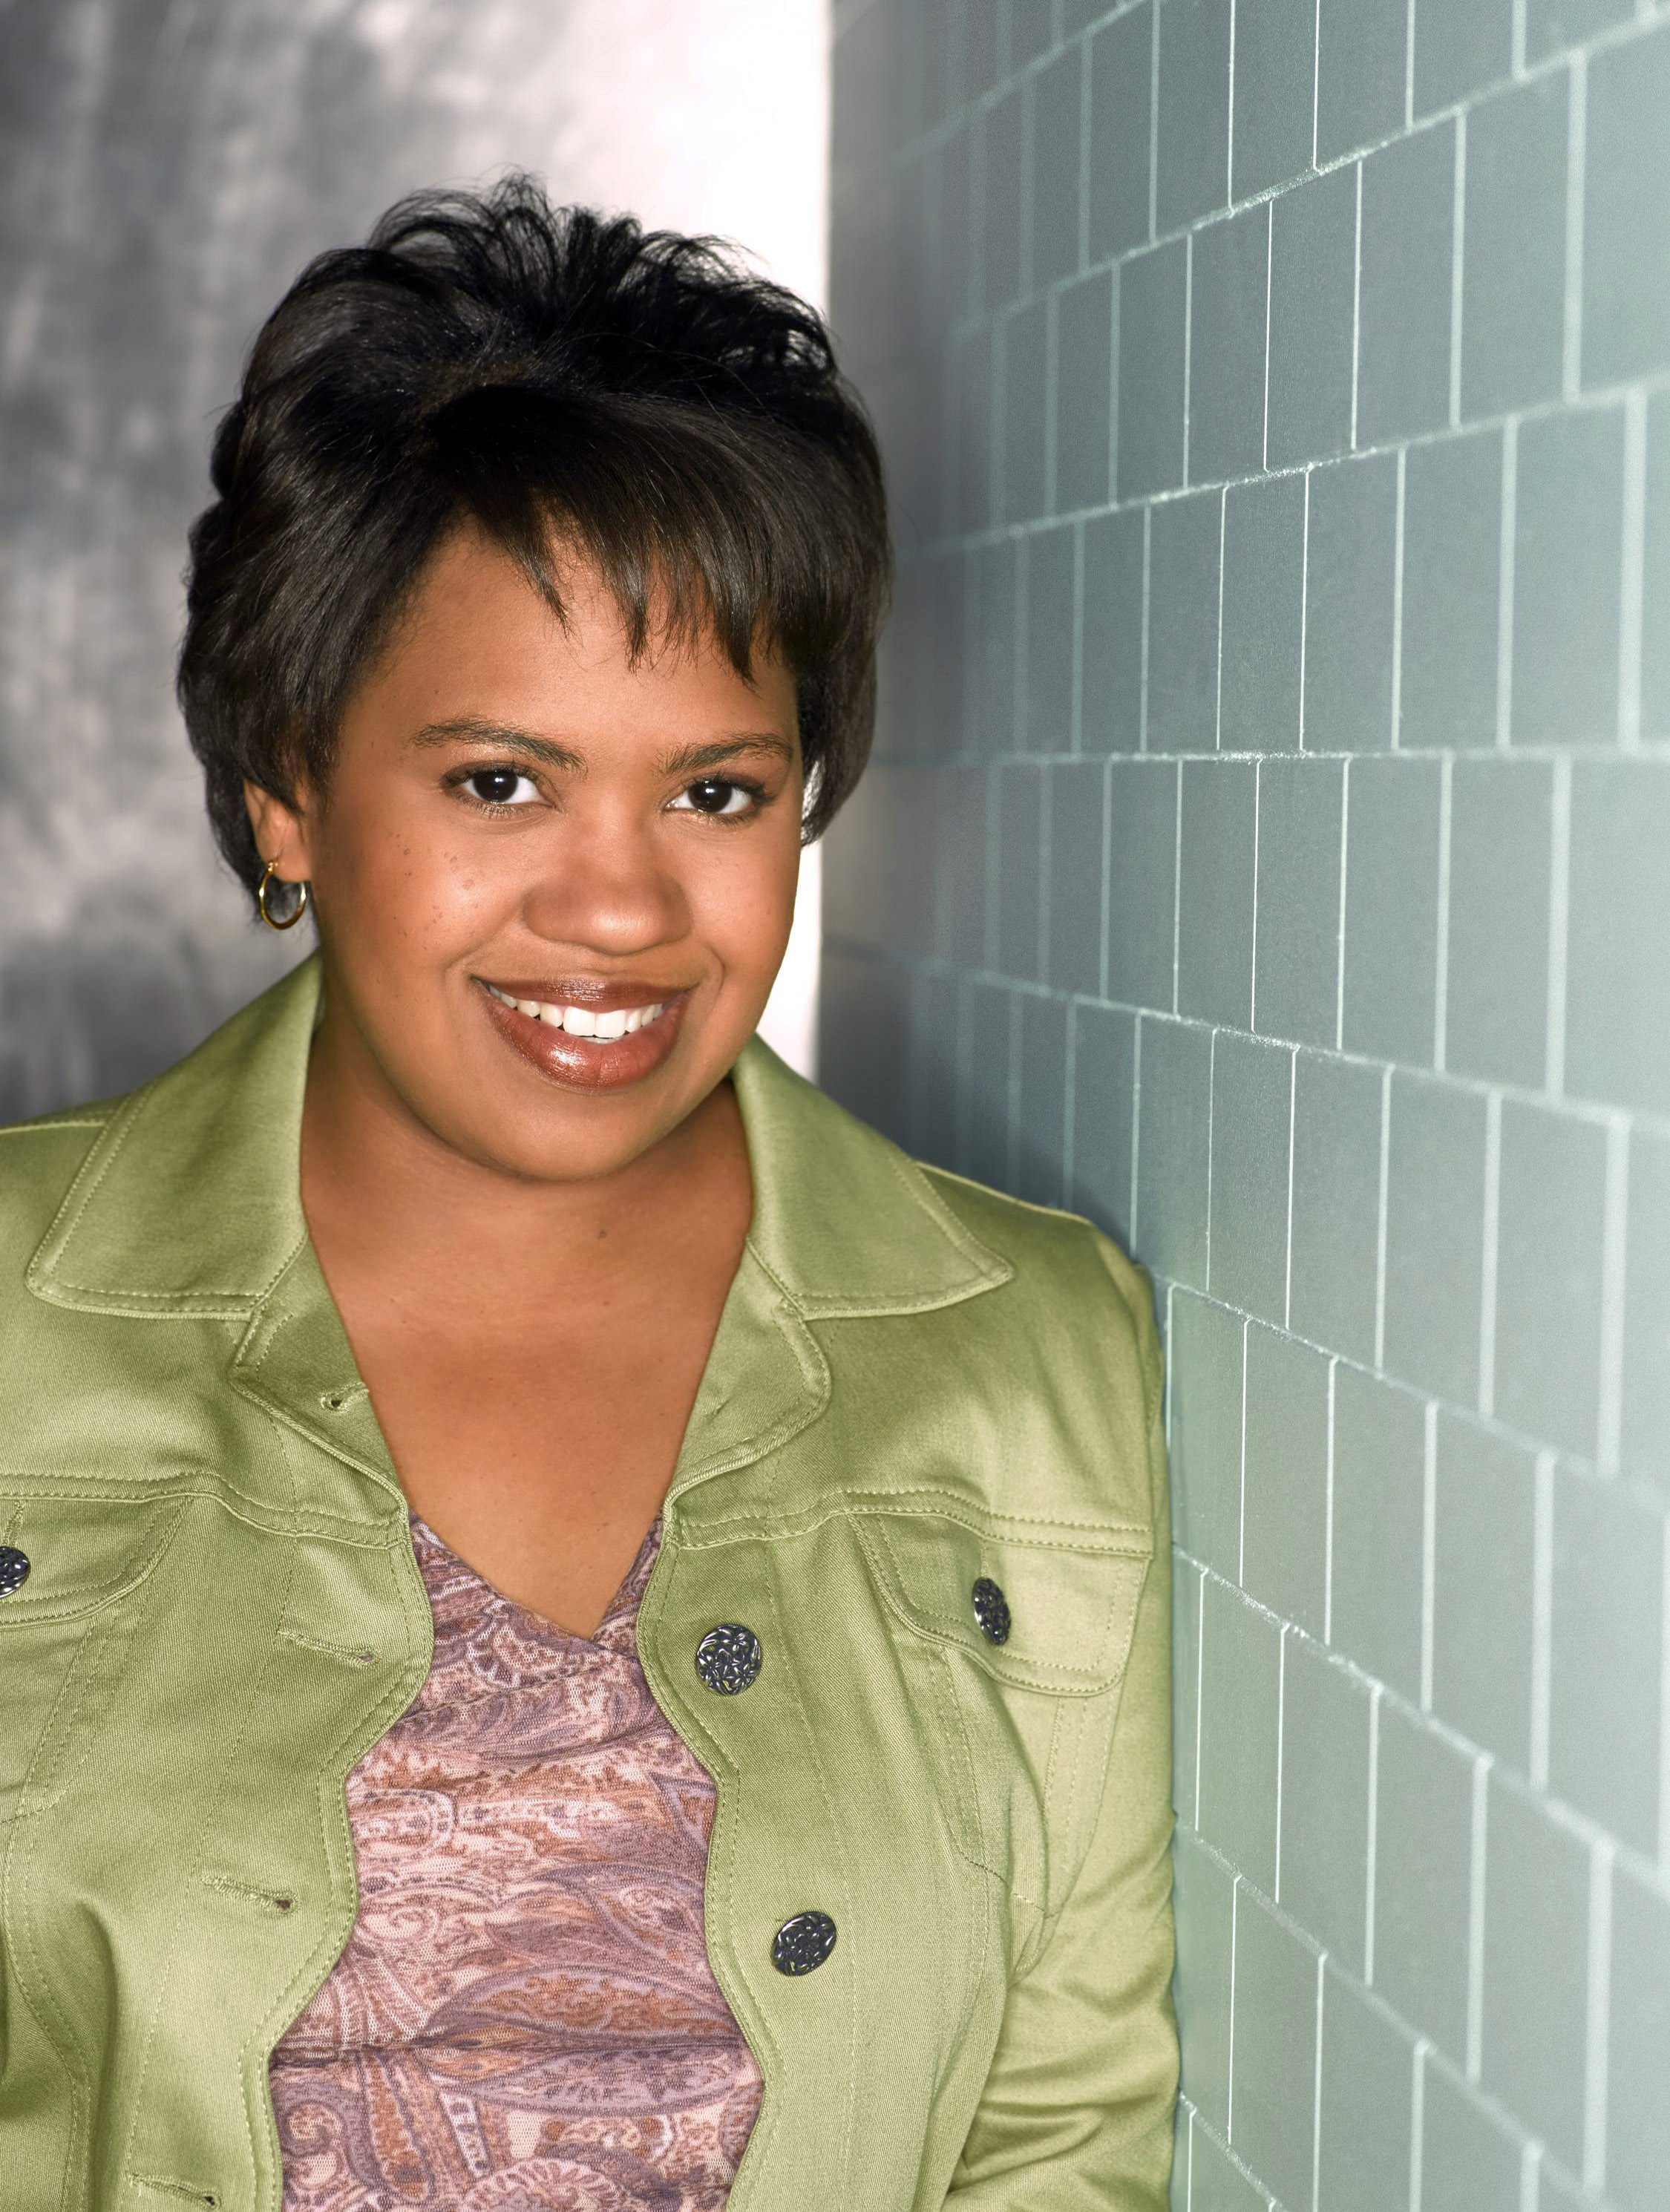 Greys Anatomy S04 Chandra Wilson 5 Dvdbash Dvdbash